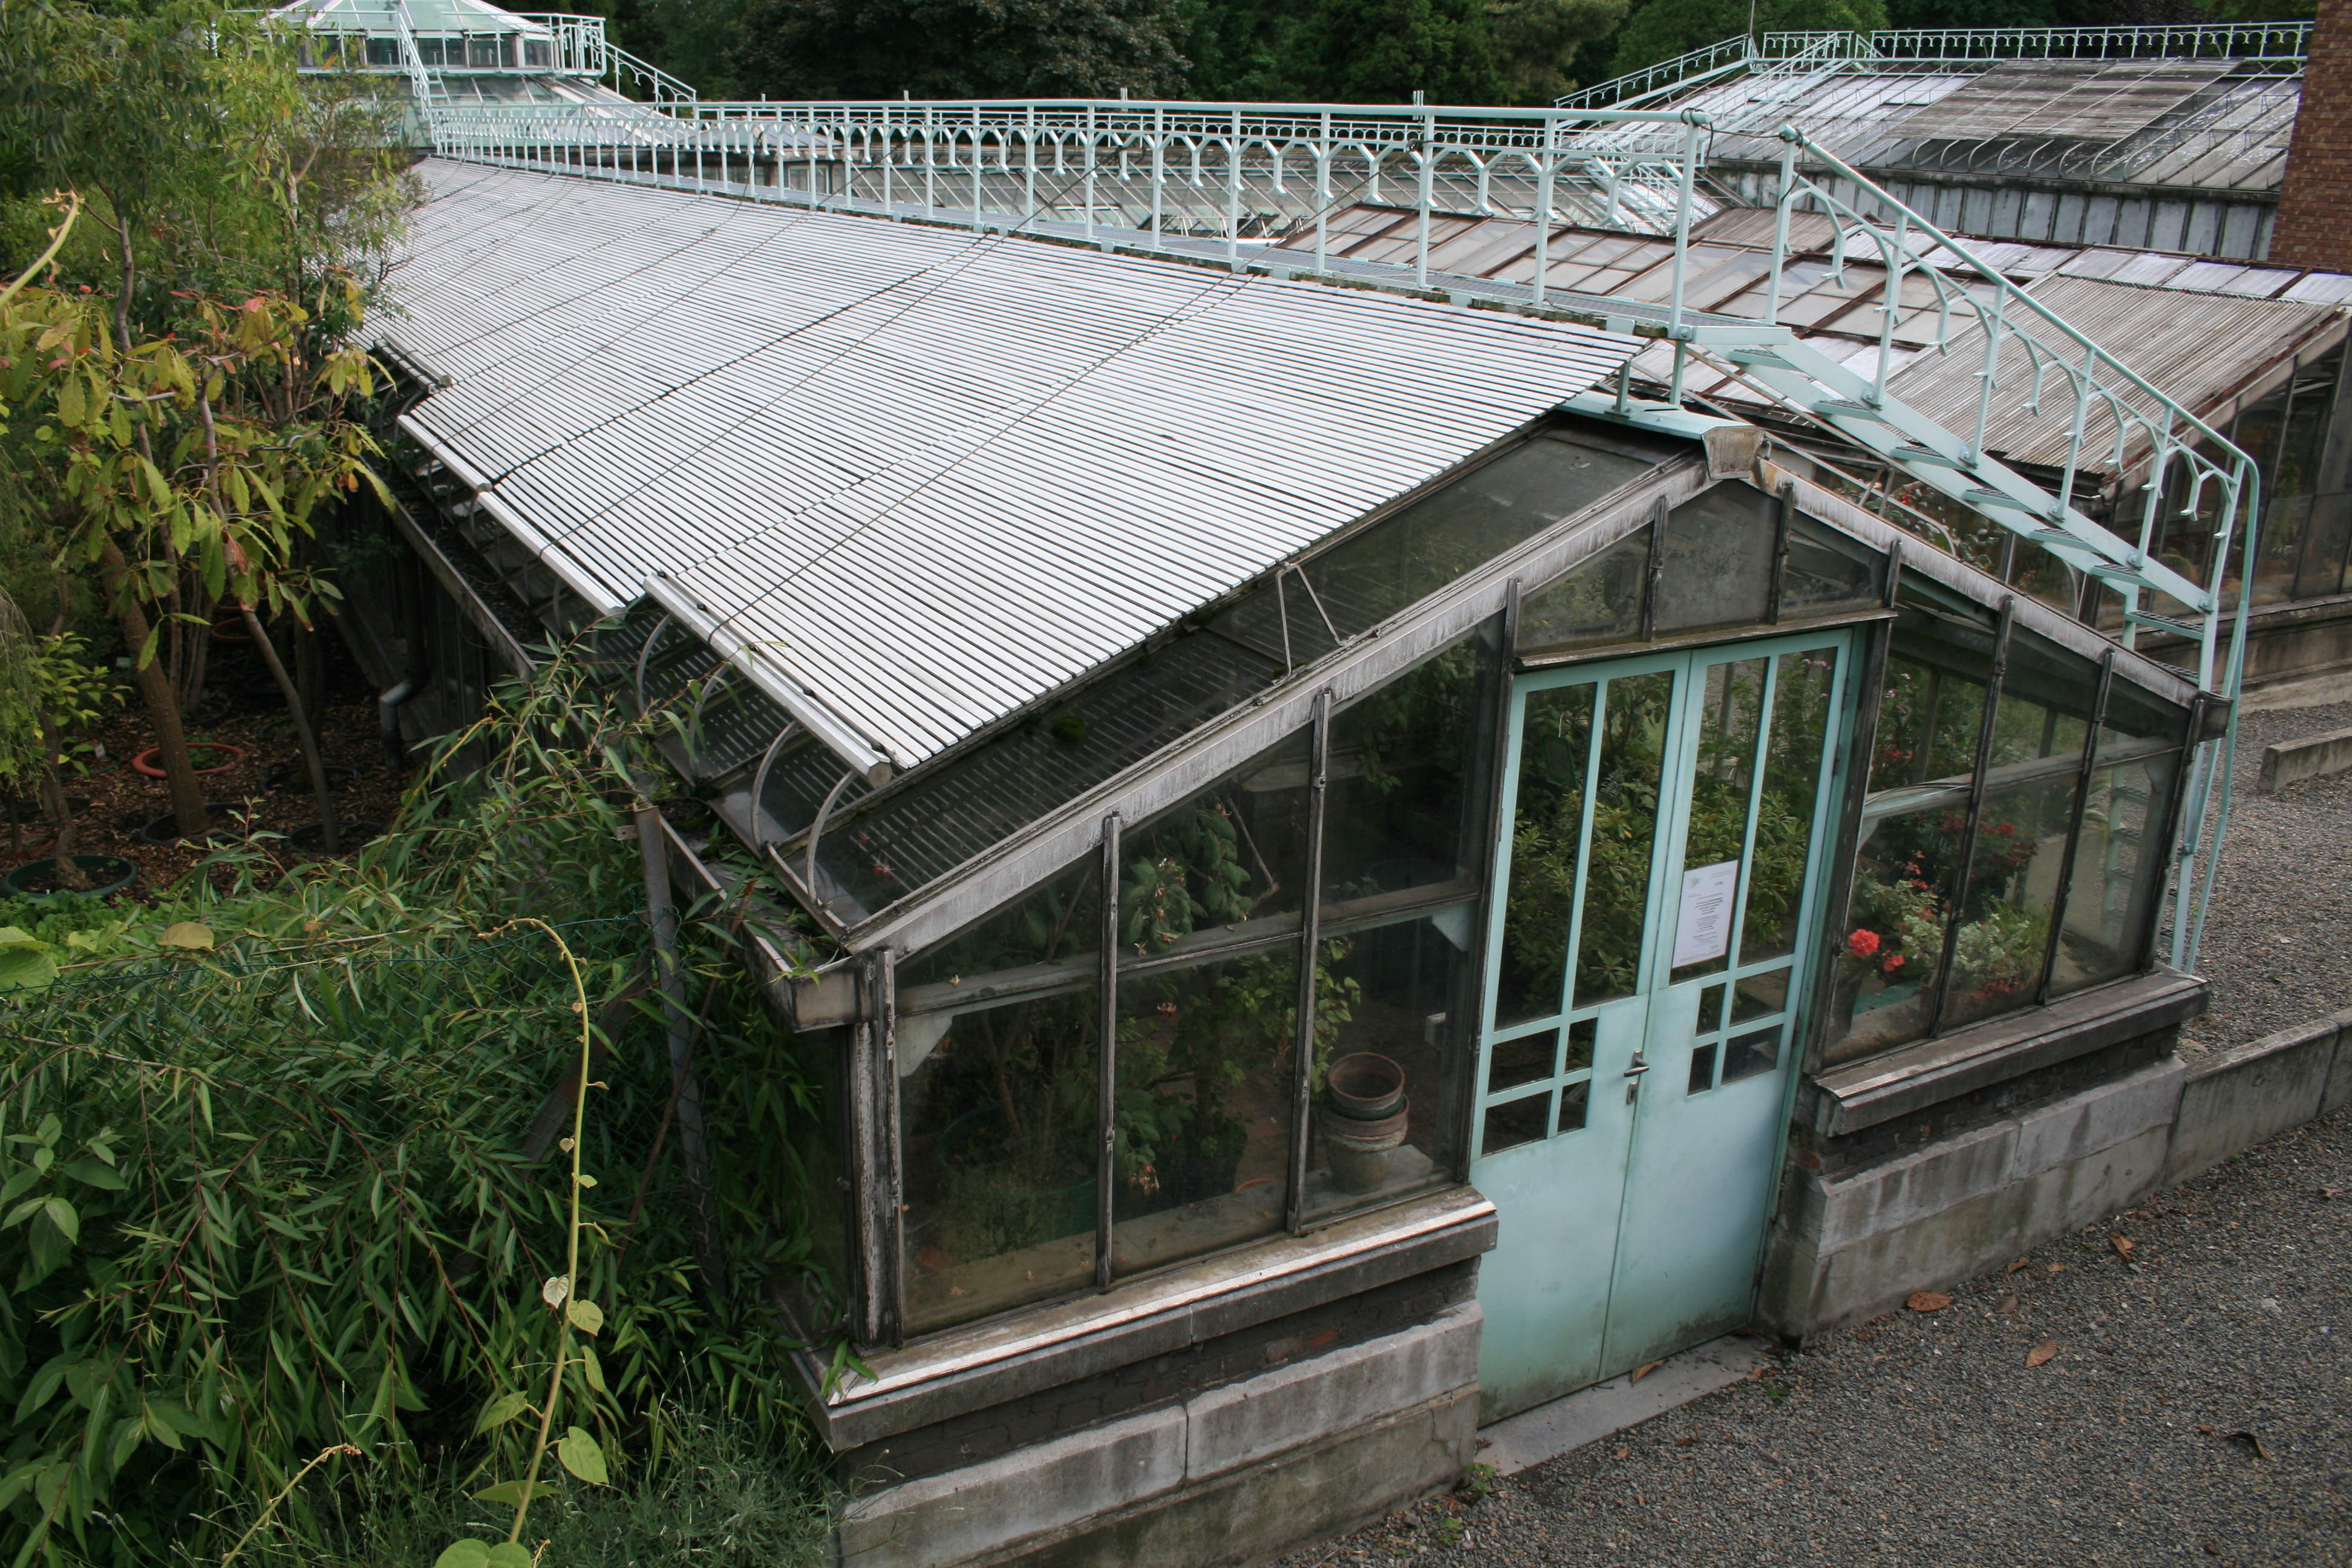 File:Old greenhouse Liege 2.jpg - Wikimedia Commons